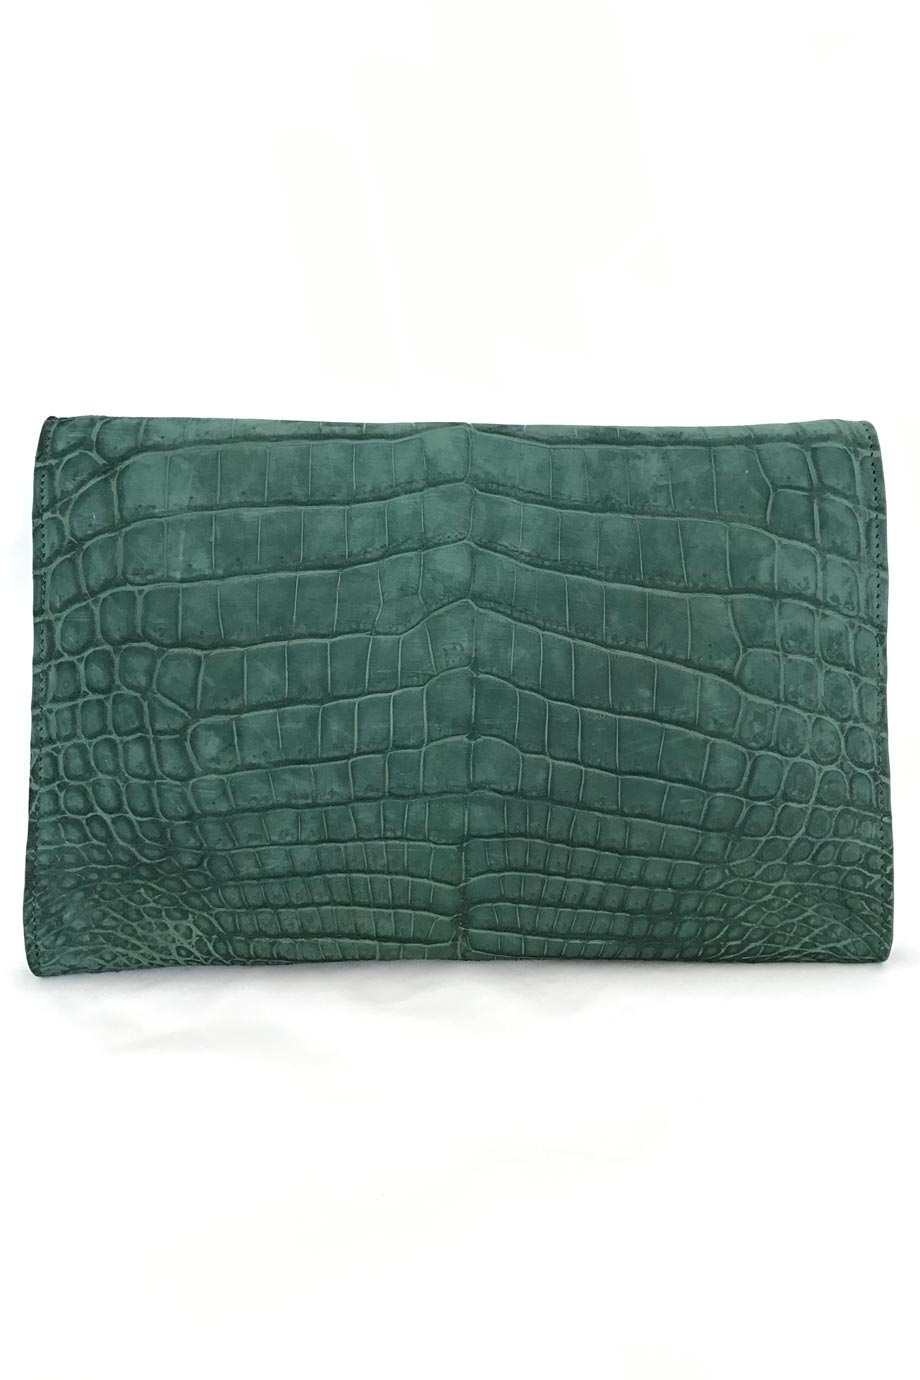 Jonathan Blake Solid Dark Green Crocodile Flap Clutch Bag-Style Therapy